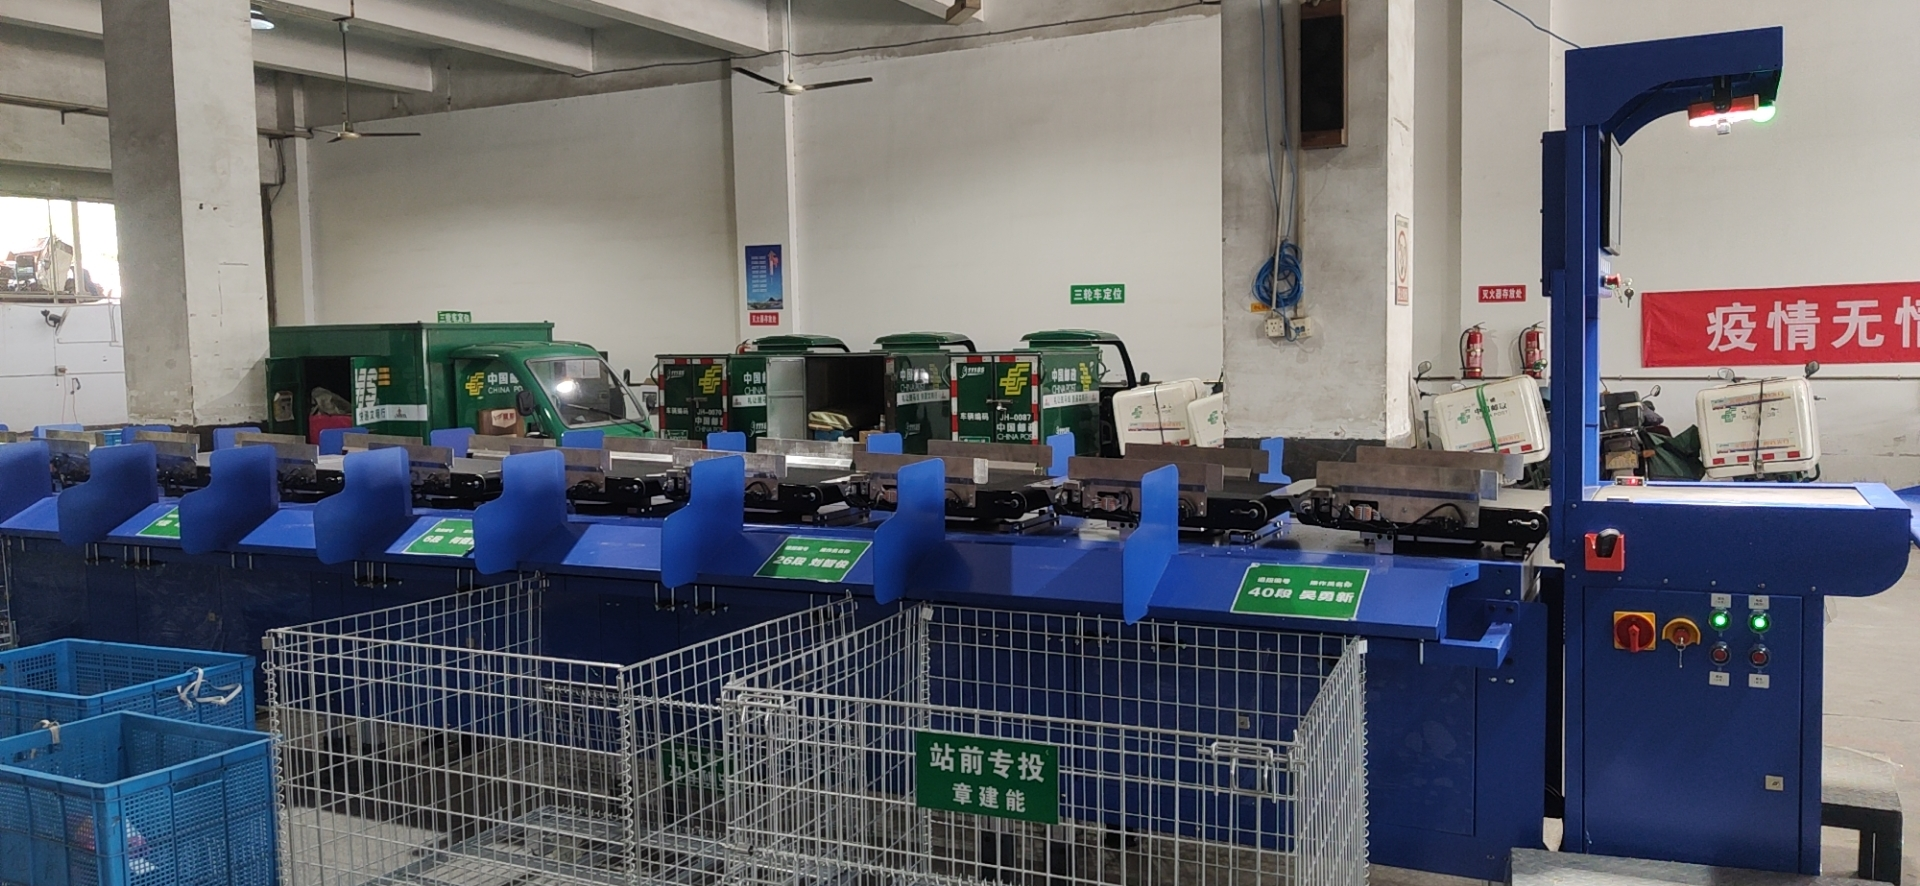 Confirmware Linear rotary sorter,new arrival to hit the market!